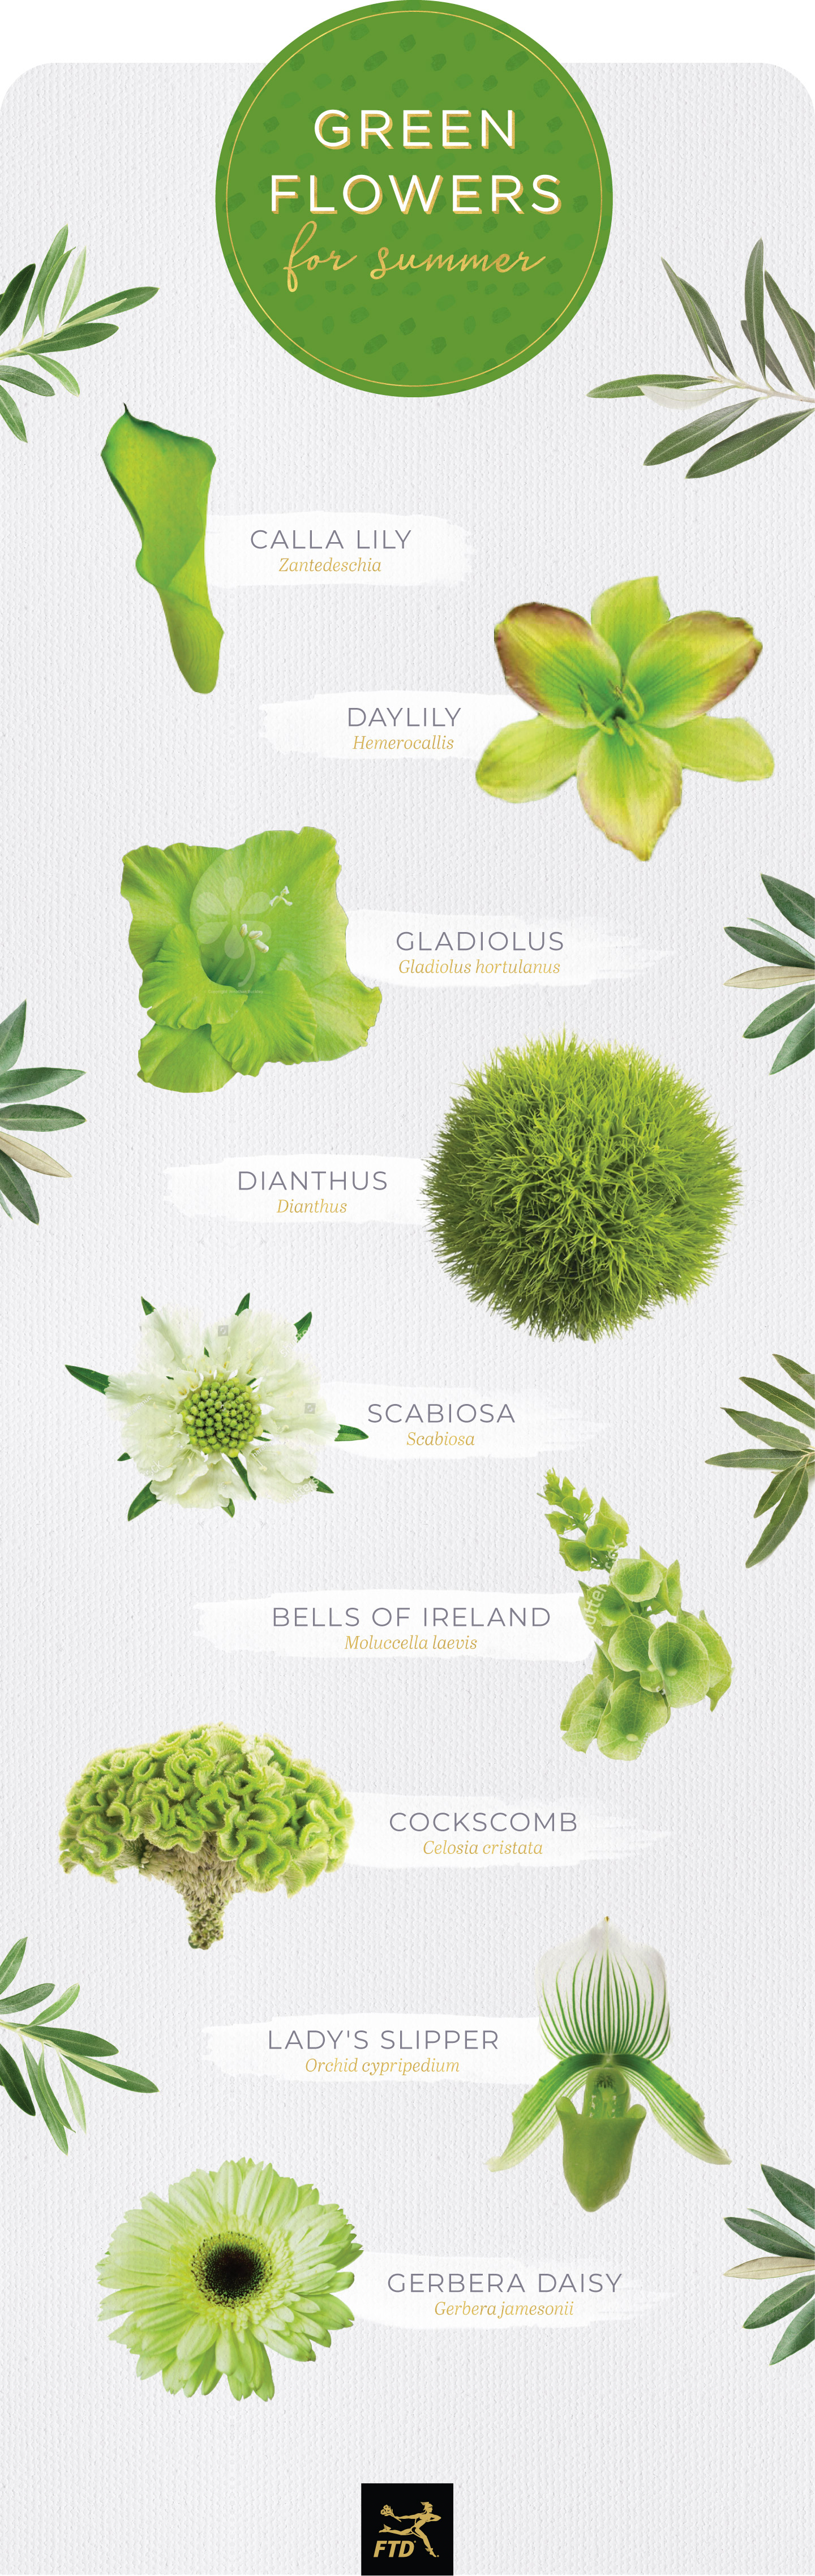 types of green flowers summer